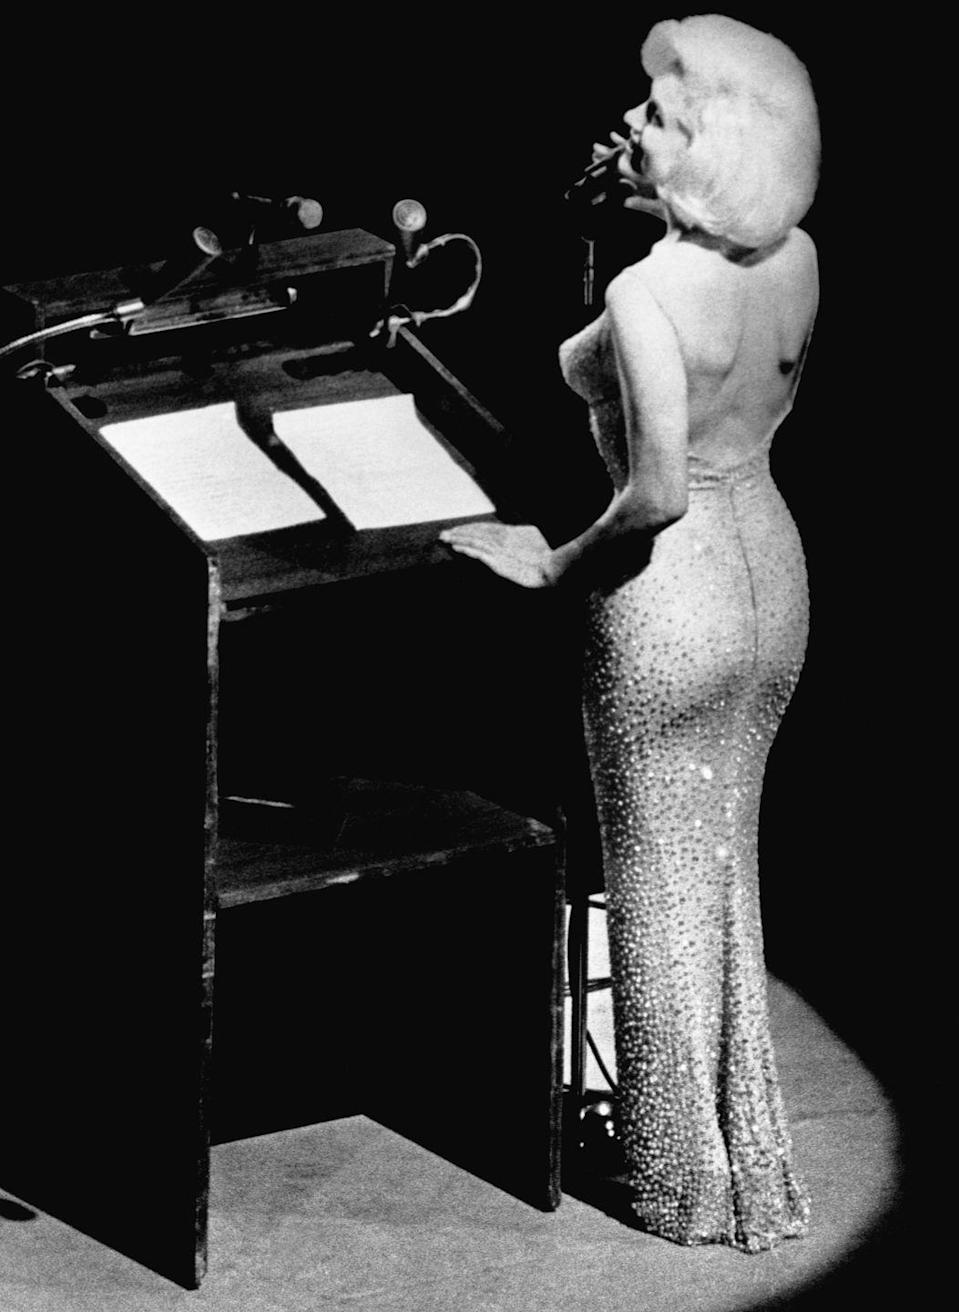 """<p>Marilyn serenaded John F. Kennedy for his 45th birthday with her now-iconic rendition of """"Happy Birthday."""" She was sewn into her stunning, shimmering gown adorned with more than 2,500 rhinestones.</p>"""